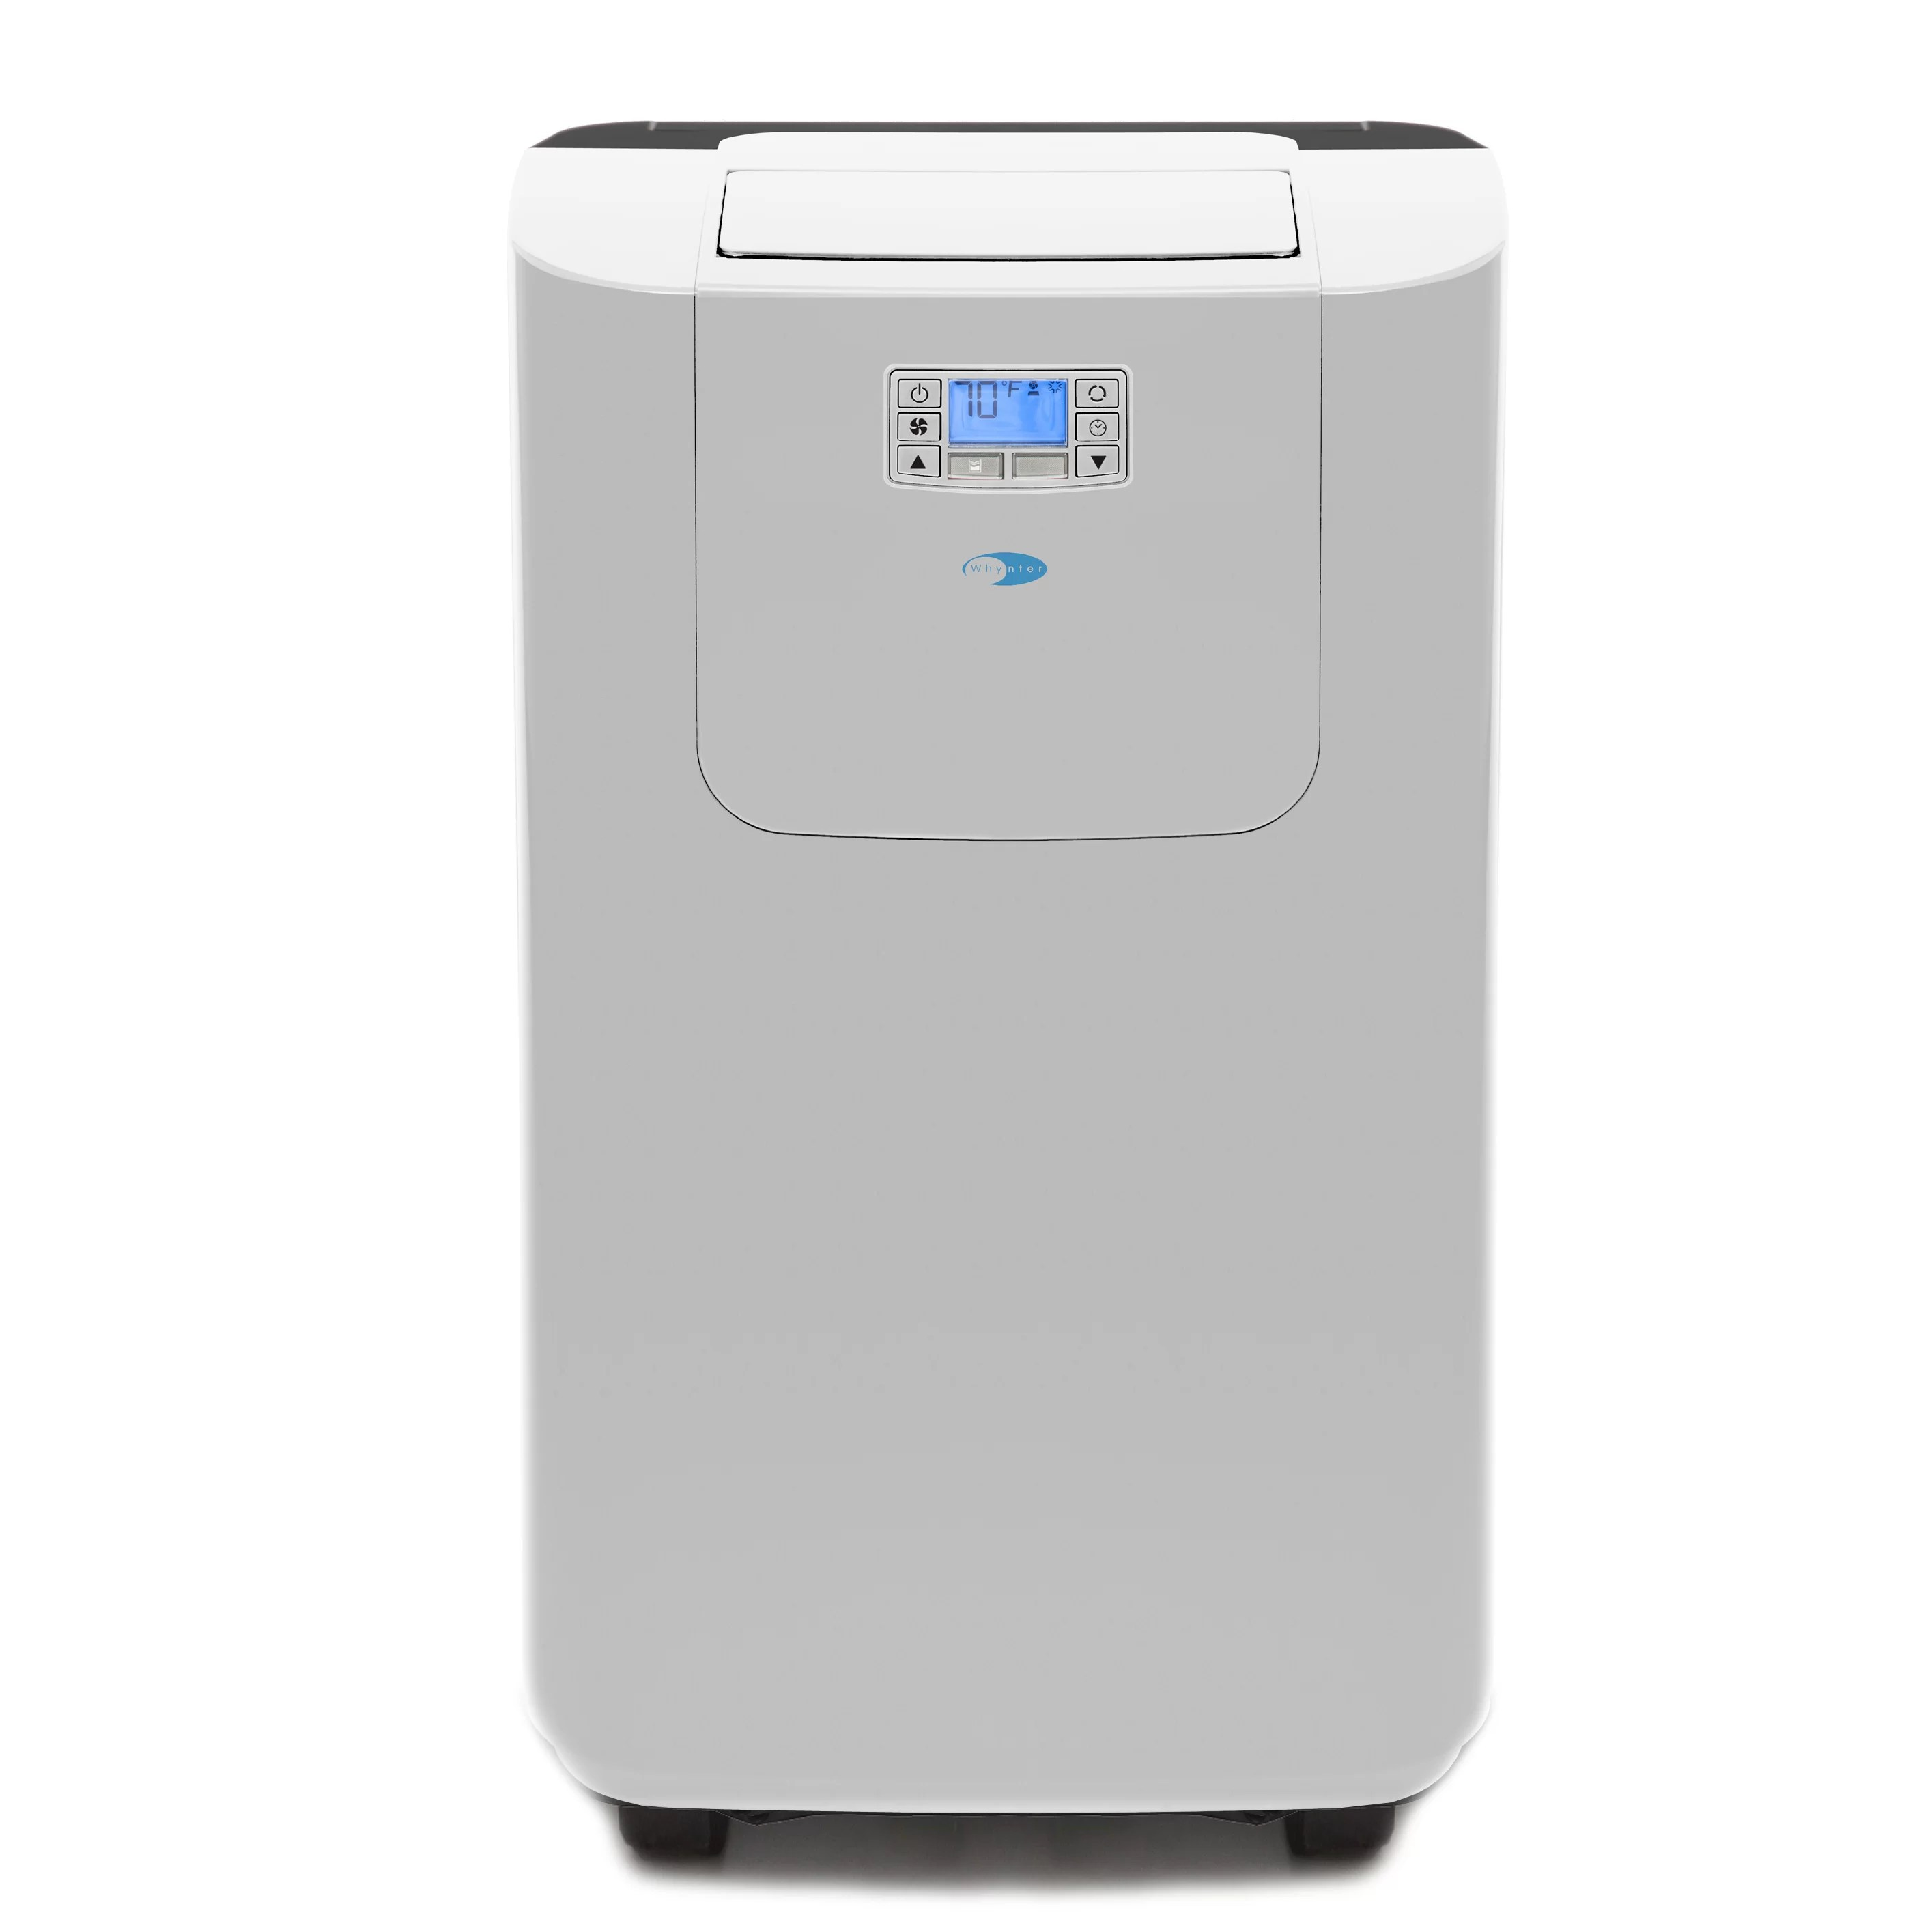 Portable Air Conditioner 12000 Btu Whynter 12000 Btu Portable Air Conditioner With Remote